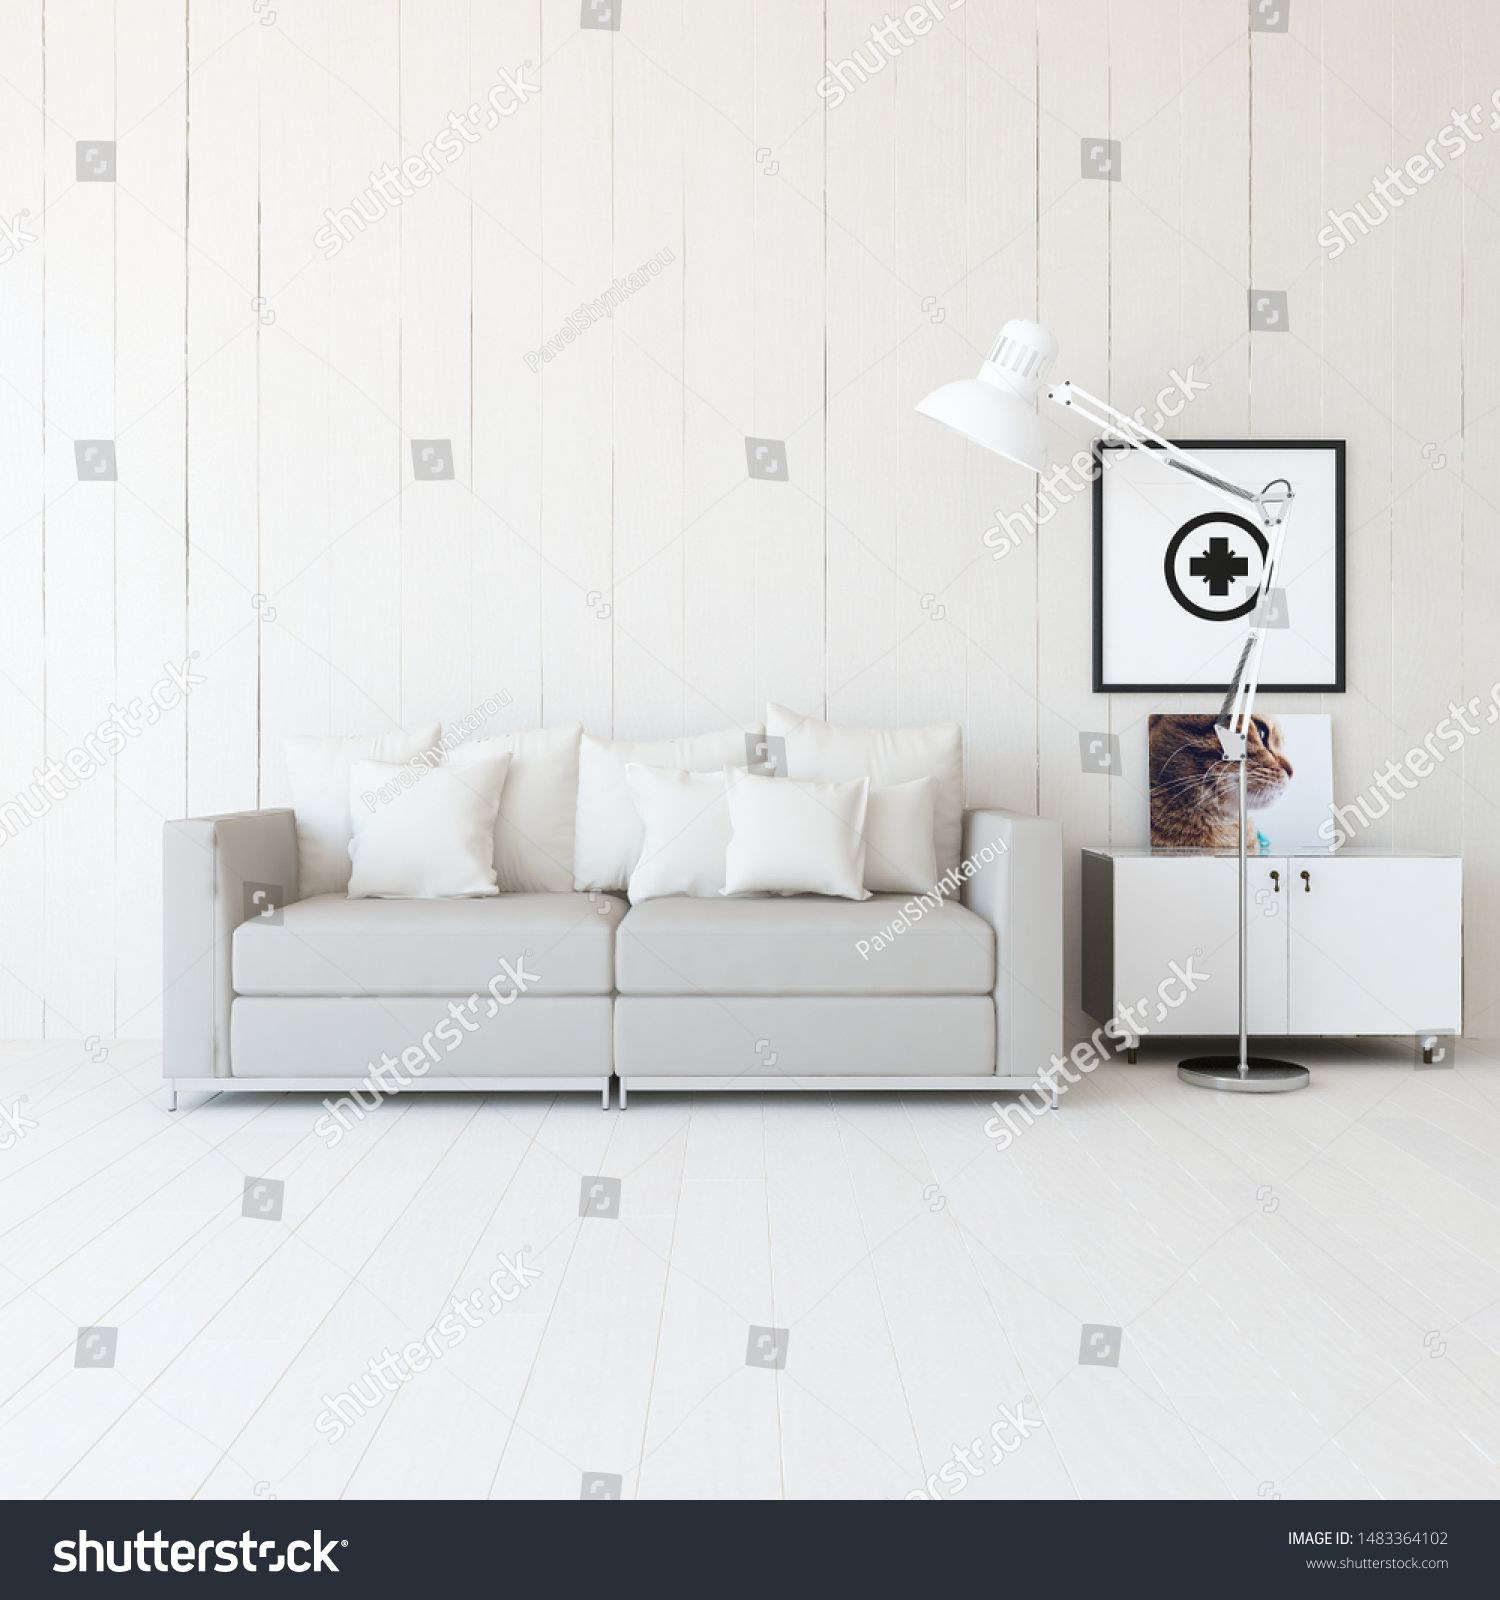 Idea Of A White Minimalist Living Room Interior With Sofa Dresser On The Wooden Floor And Decor On The Large In 2020 Minimalist Living Room Living Room Interior Room #white #minimalist #living #room